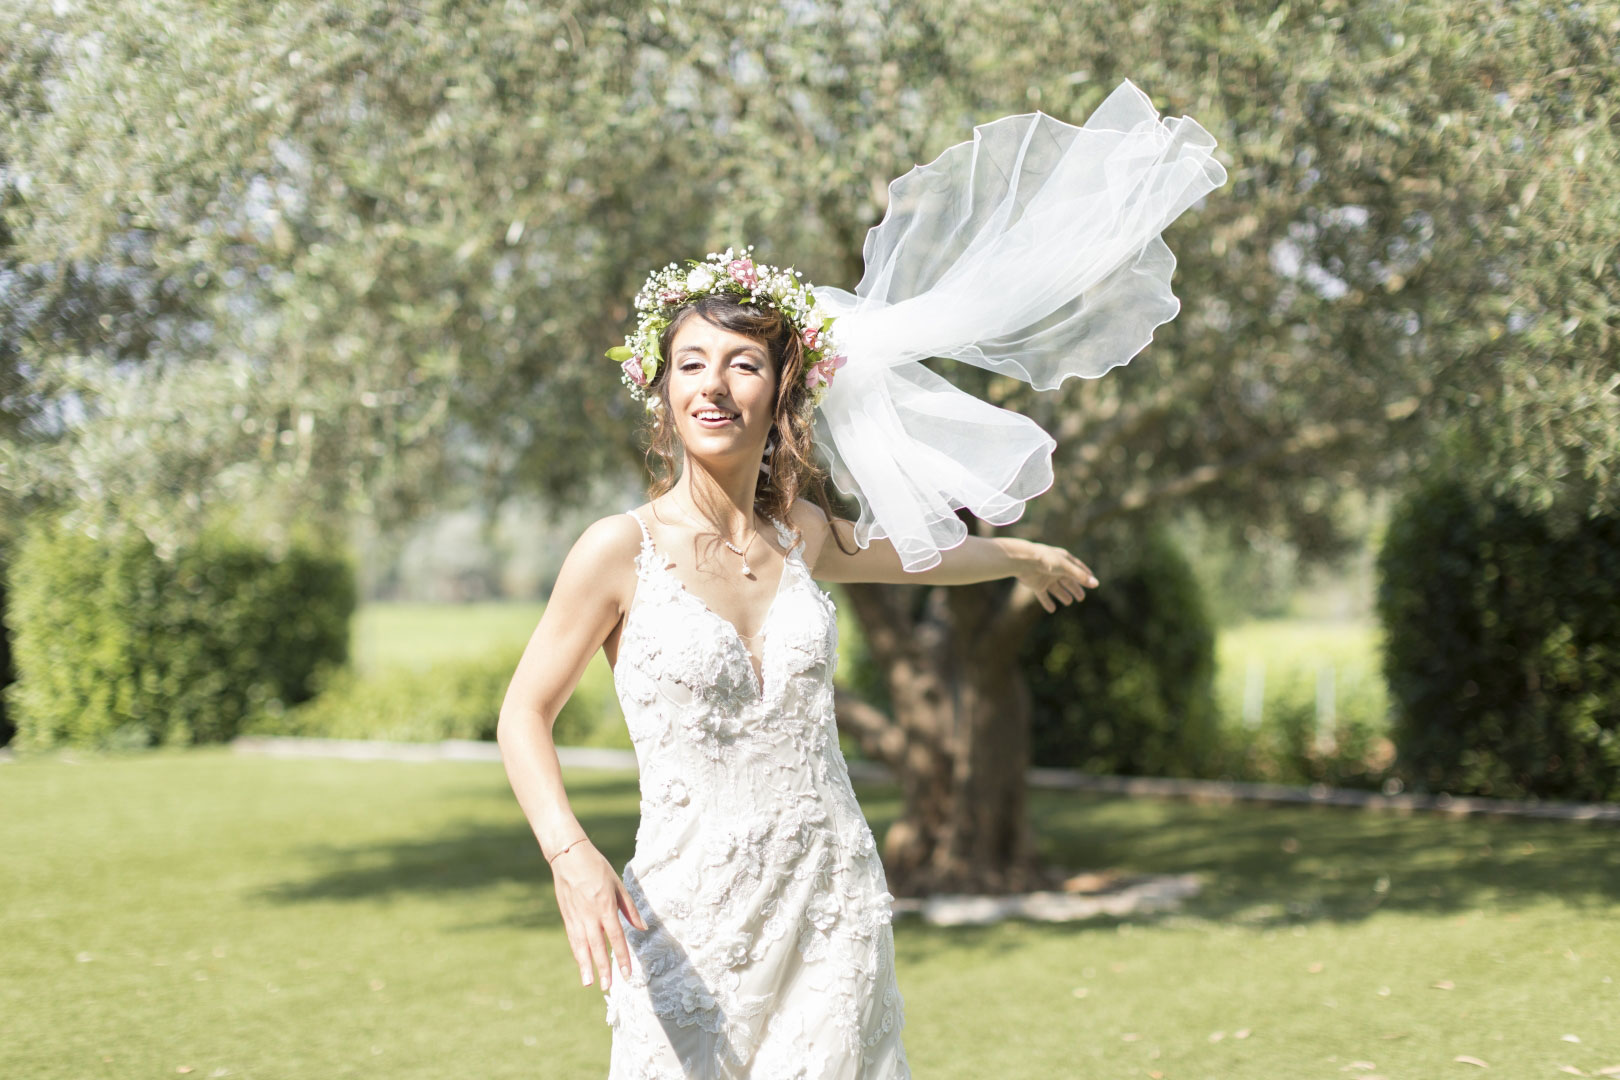 mariage-photographe-destination-elopement-francais-style-mariage-provence-olivier-dress-robe-mariee